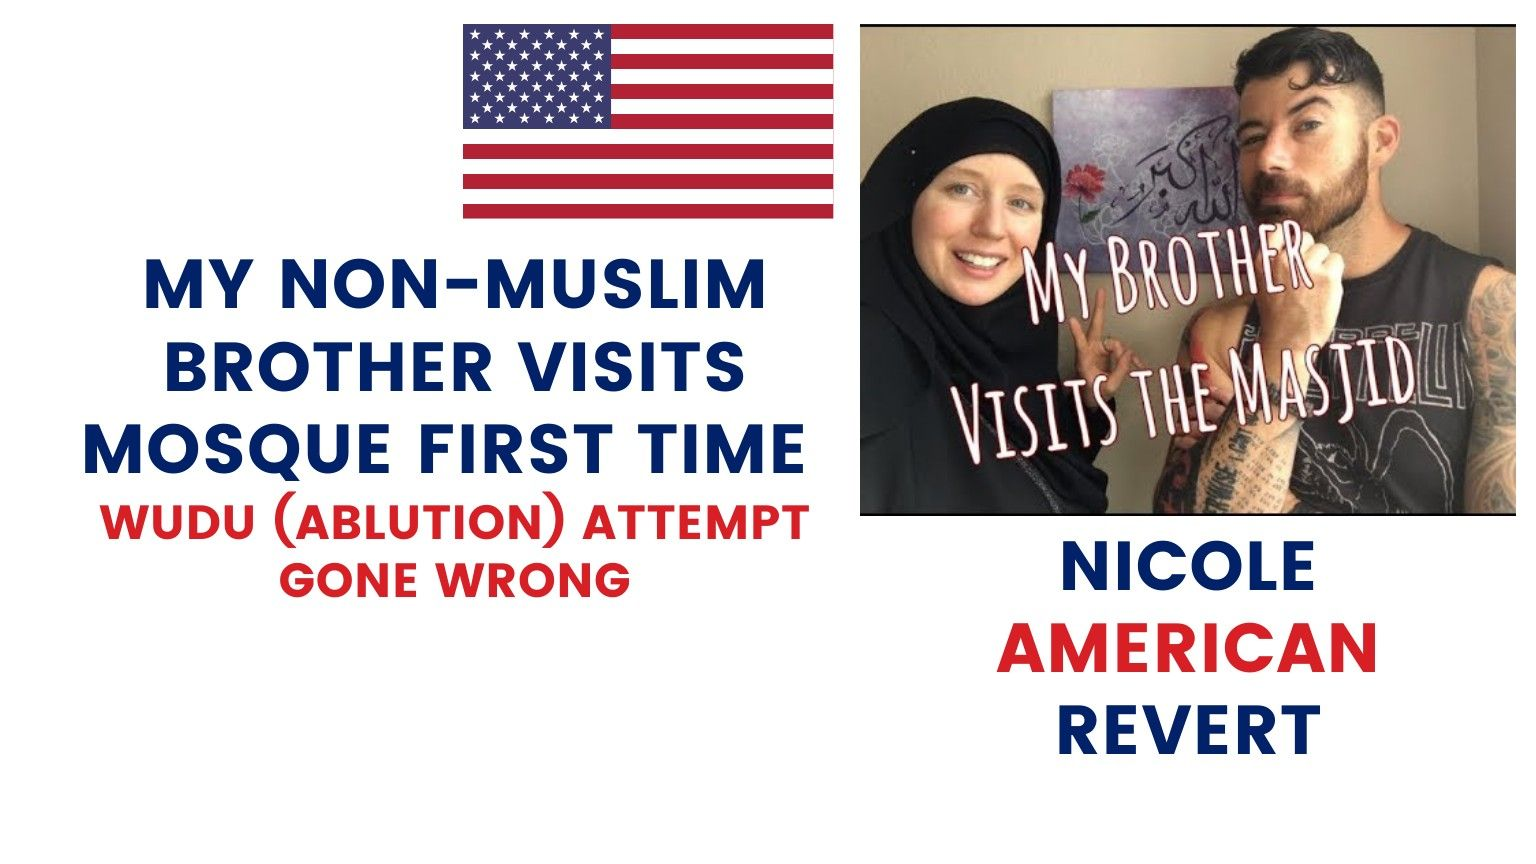 🇺🇸 NICOLE AMERICAN REVERT 🧕 | MY NON-MUSLIM BROTHER VISITS MOSQUE FIRST TIME